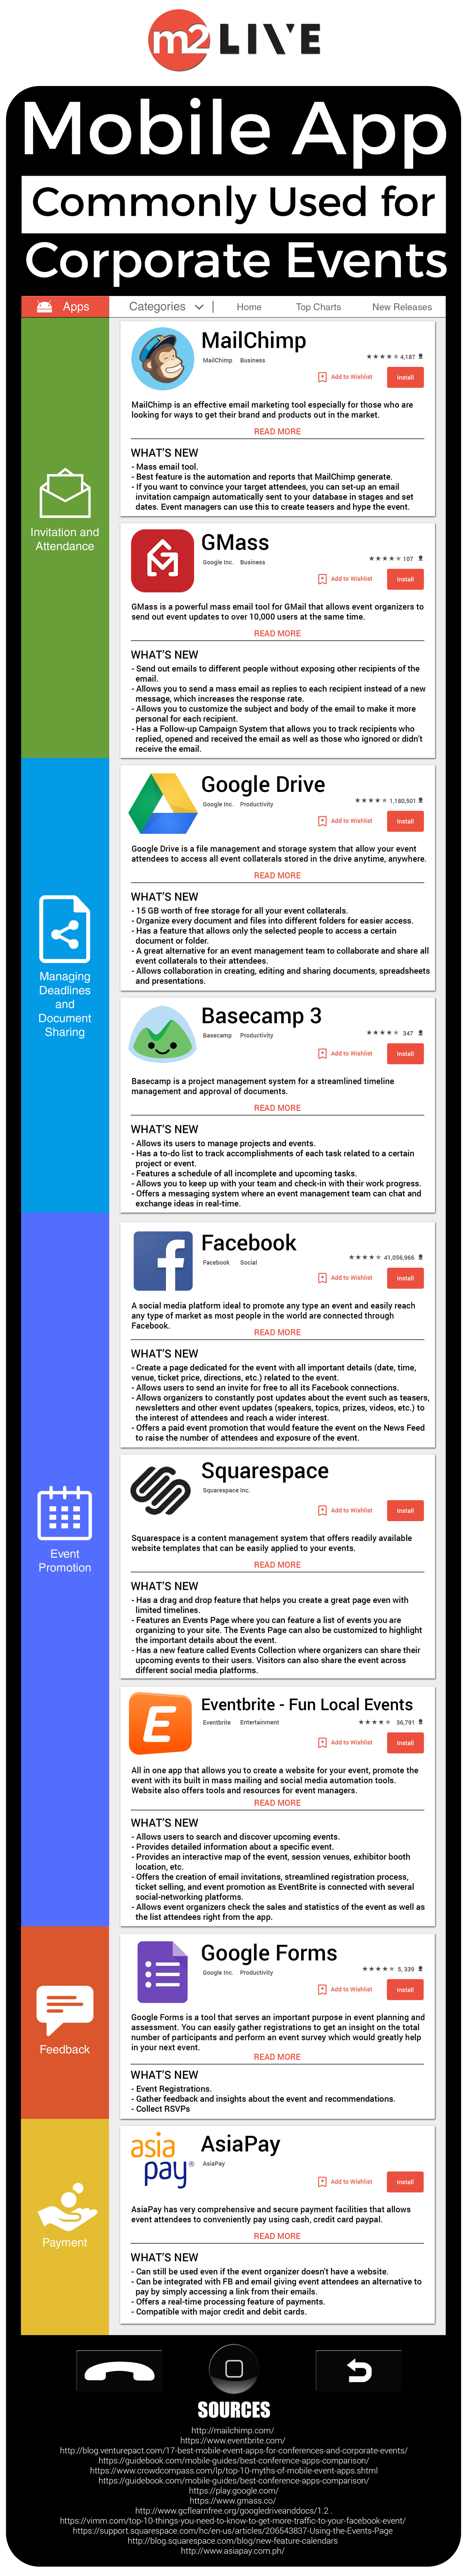 Mobile App Commonly Used for Corporate Events